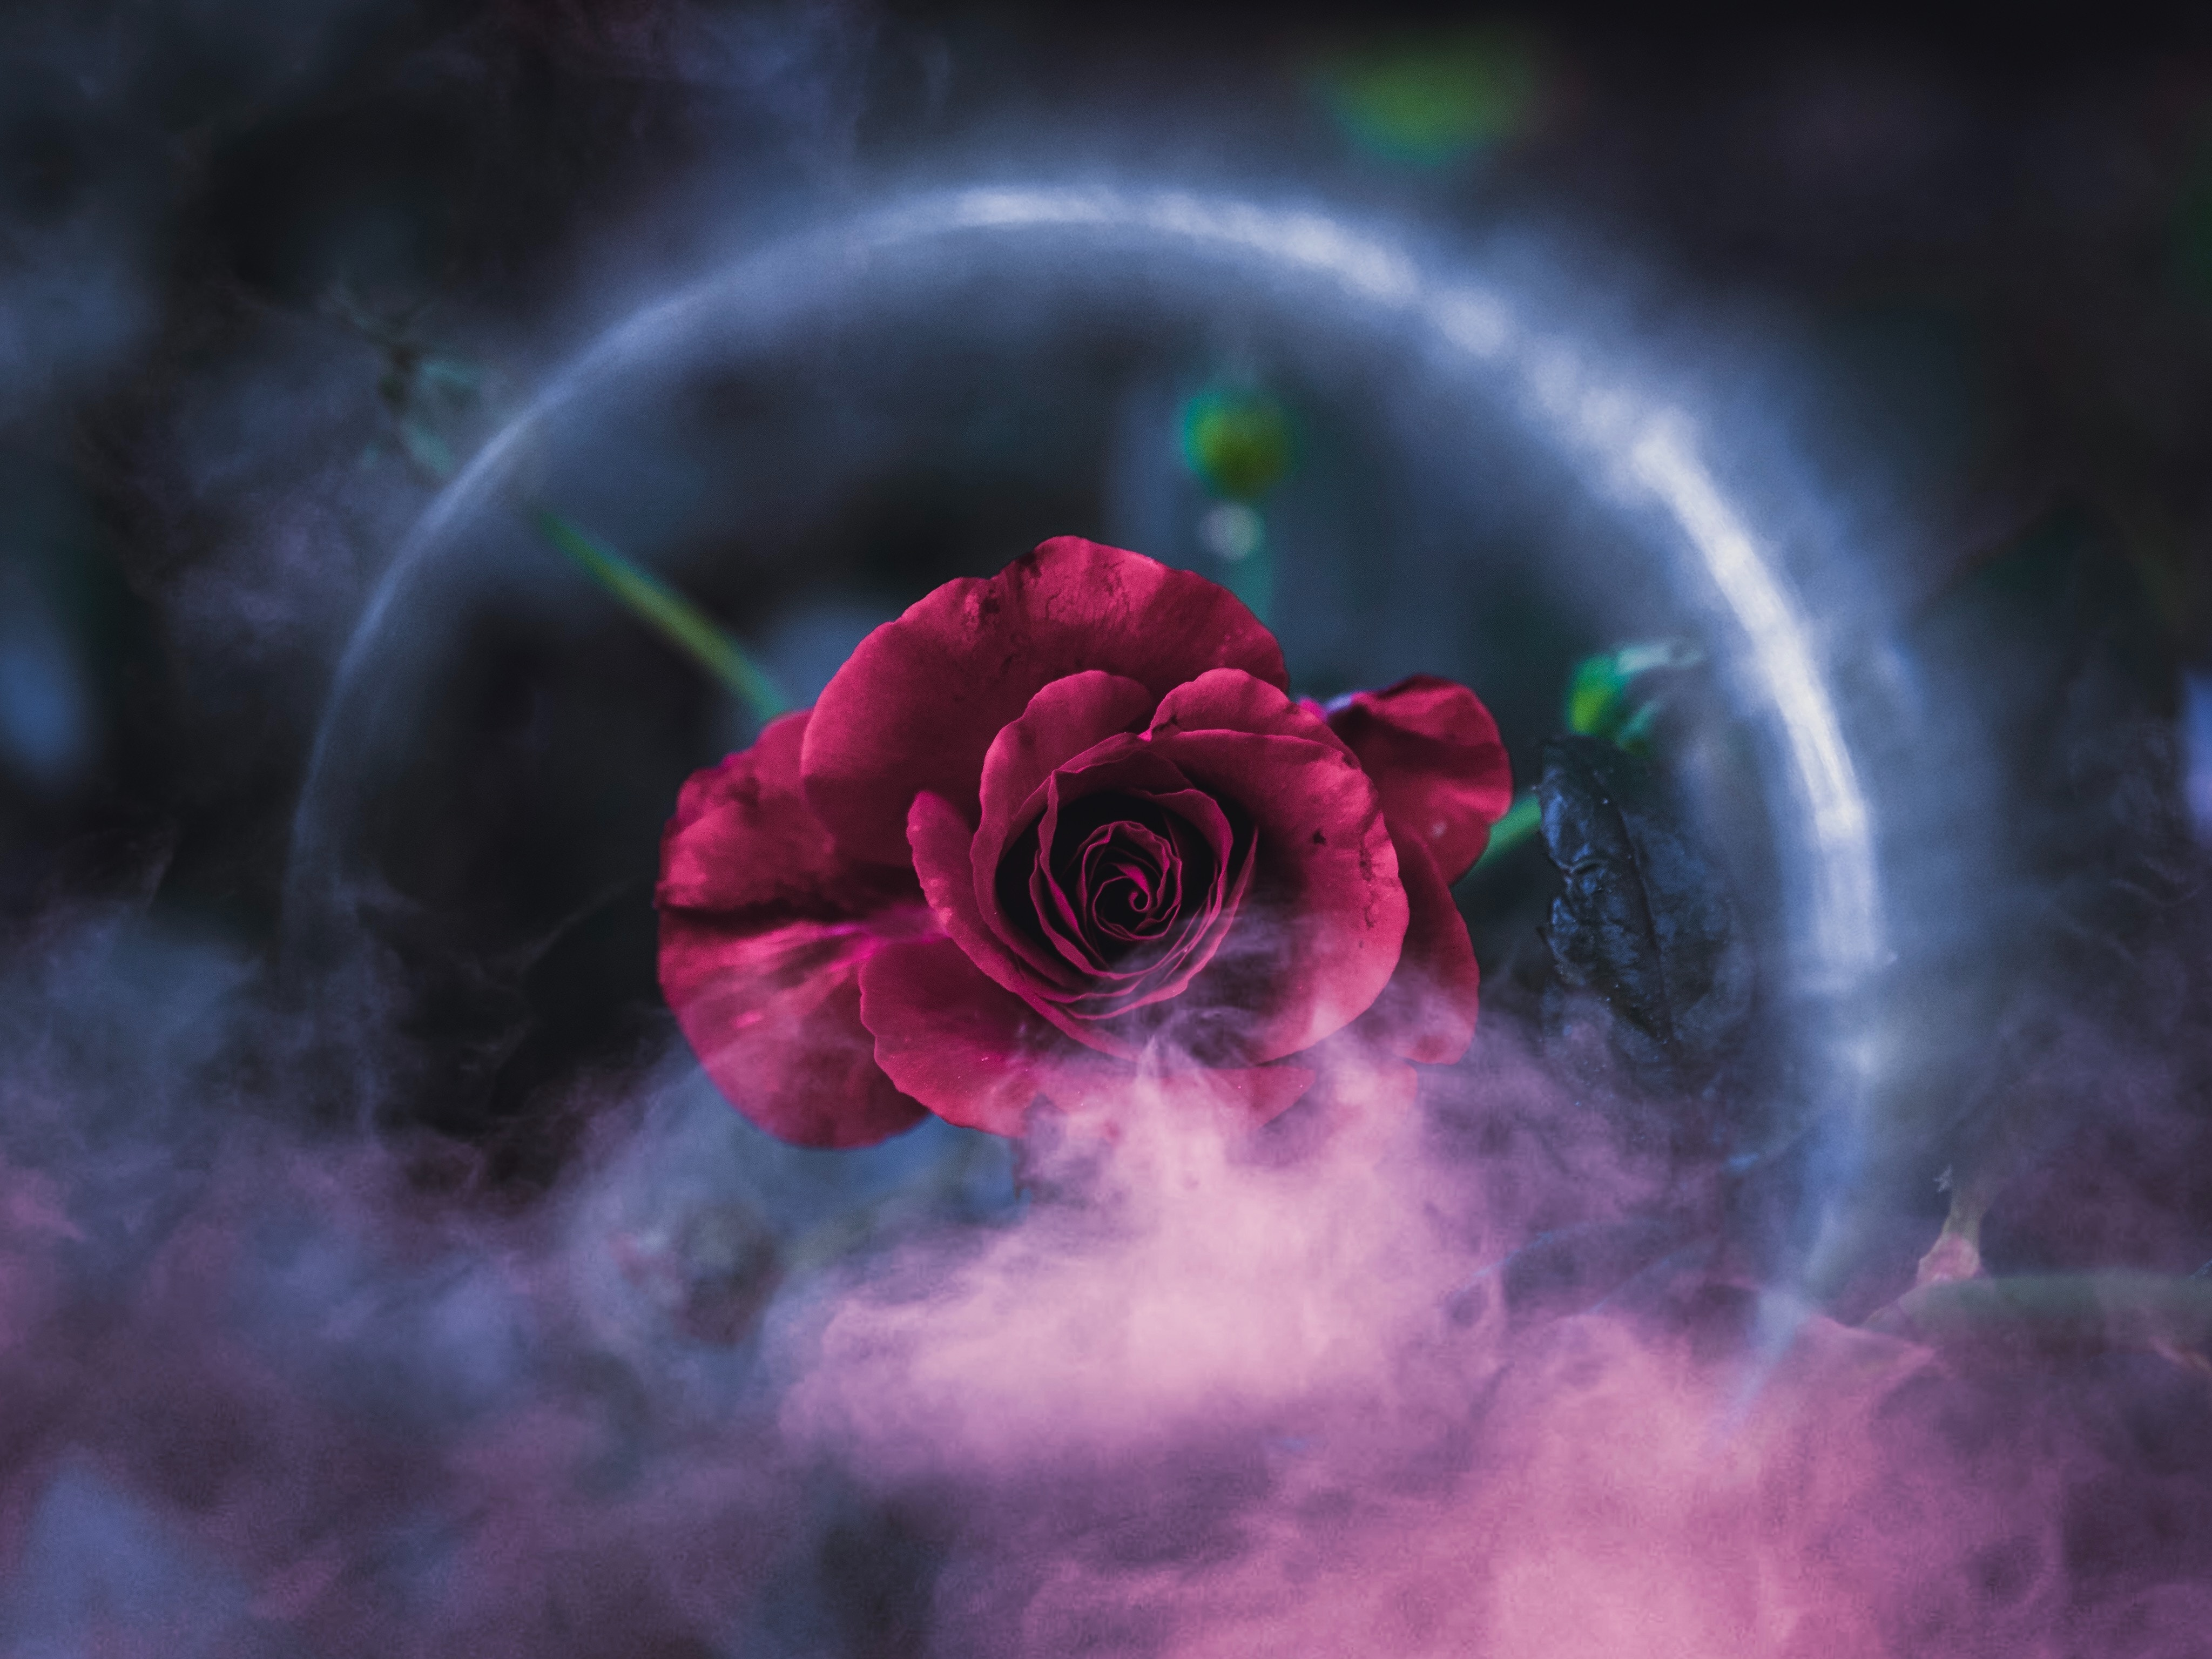 Rose Dreamy 4k, HD Flowers, 4k Wallpapers, Images ...